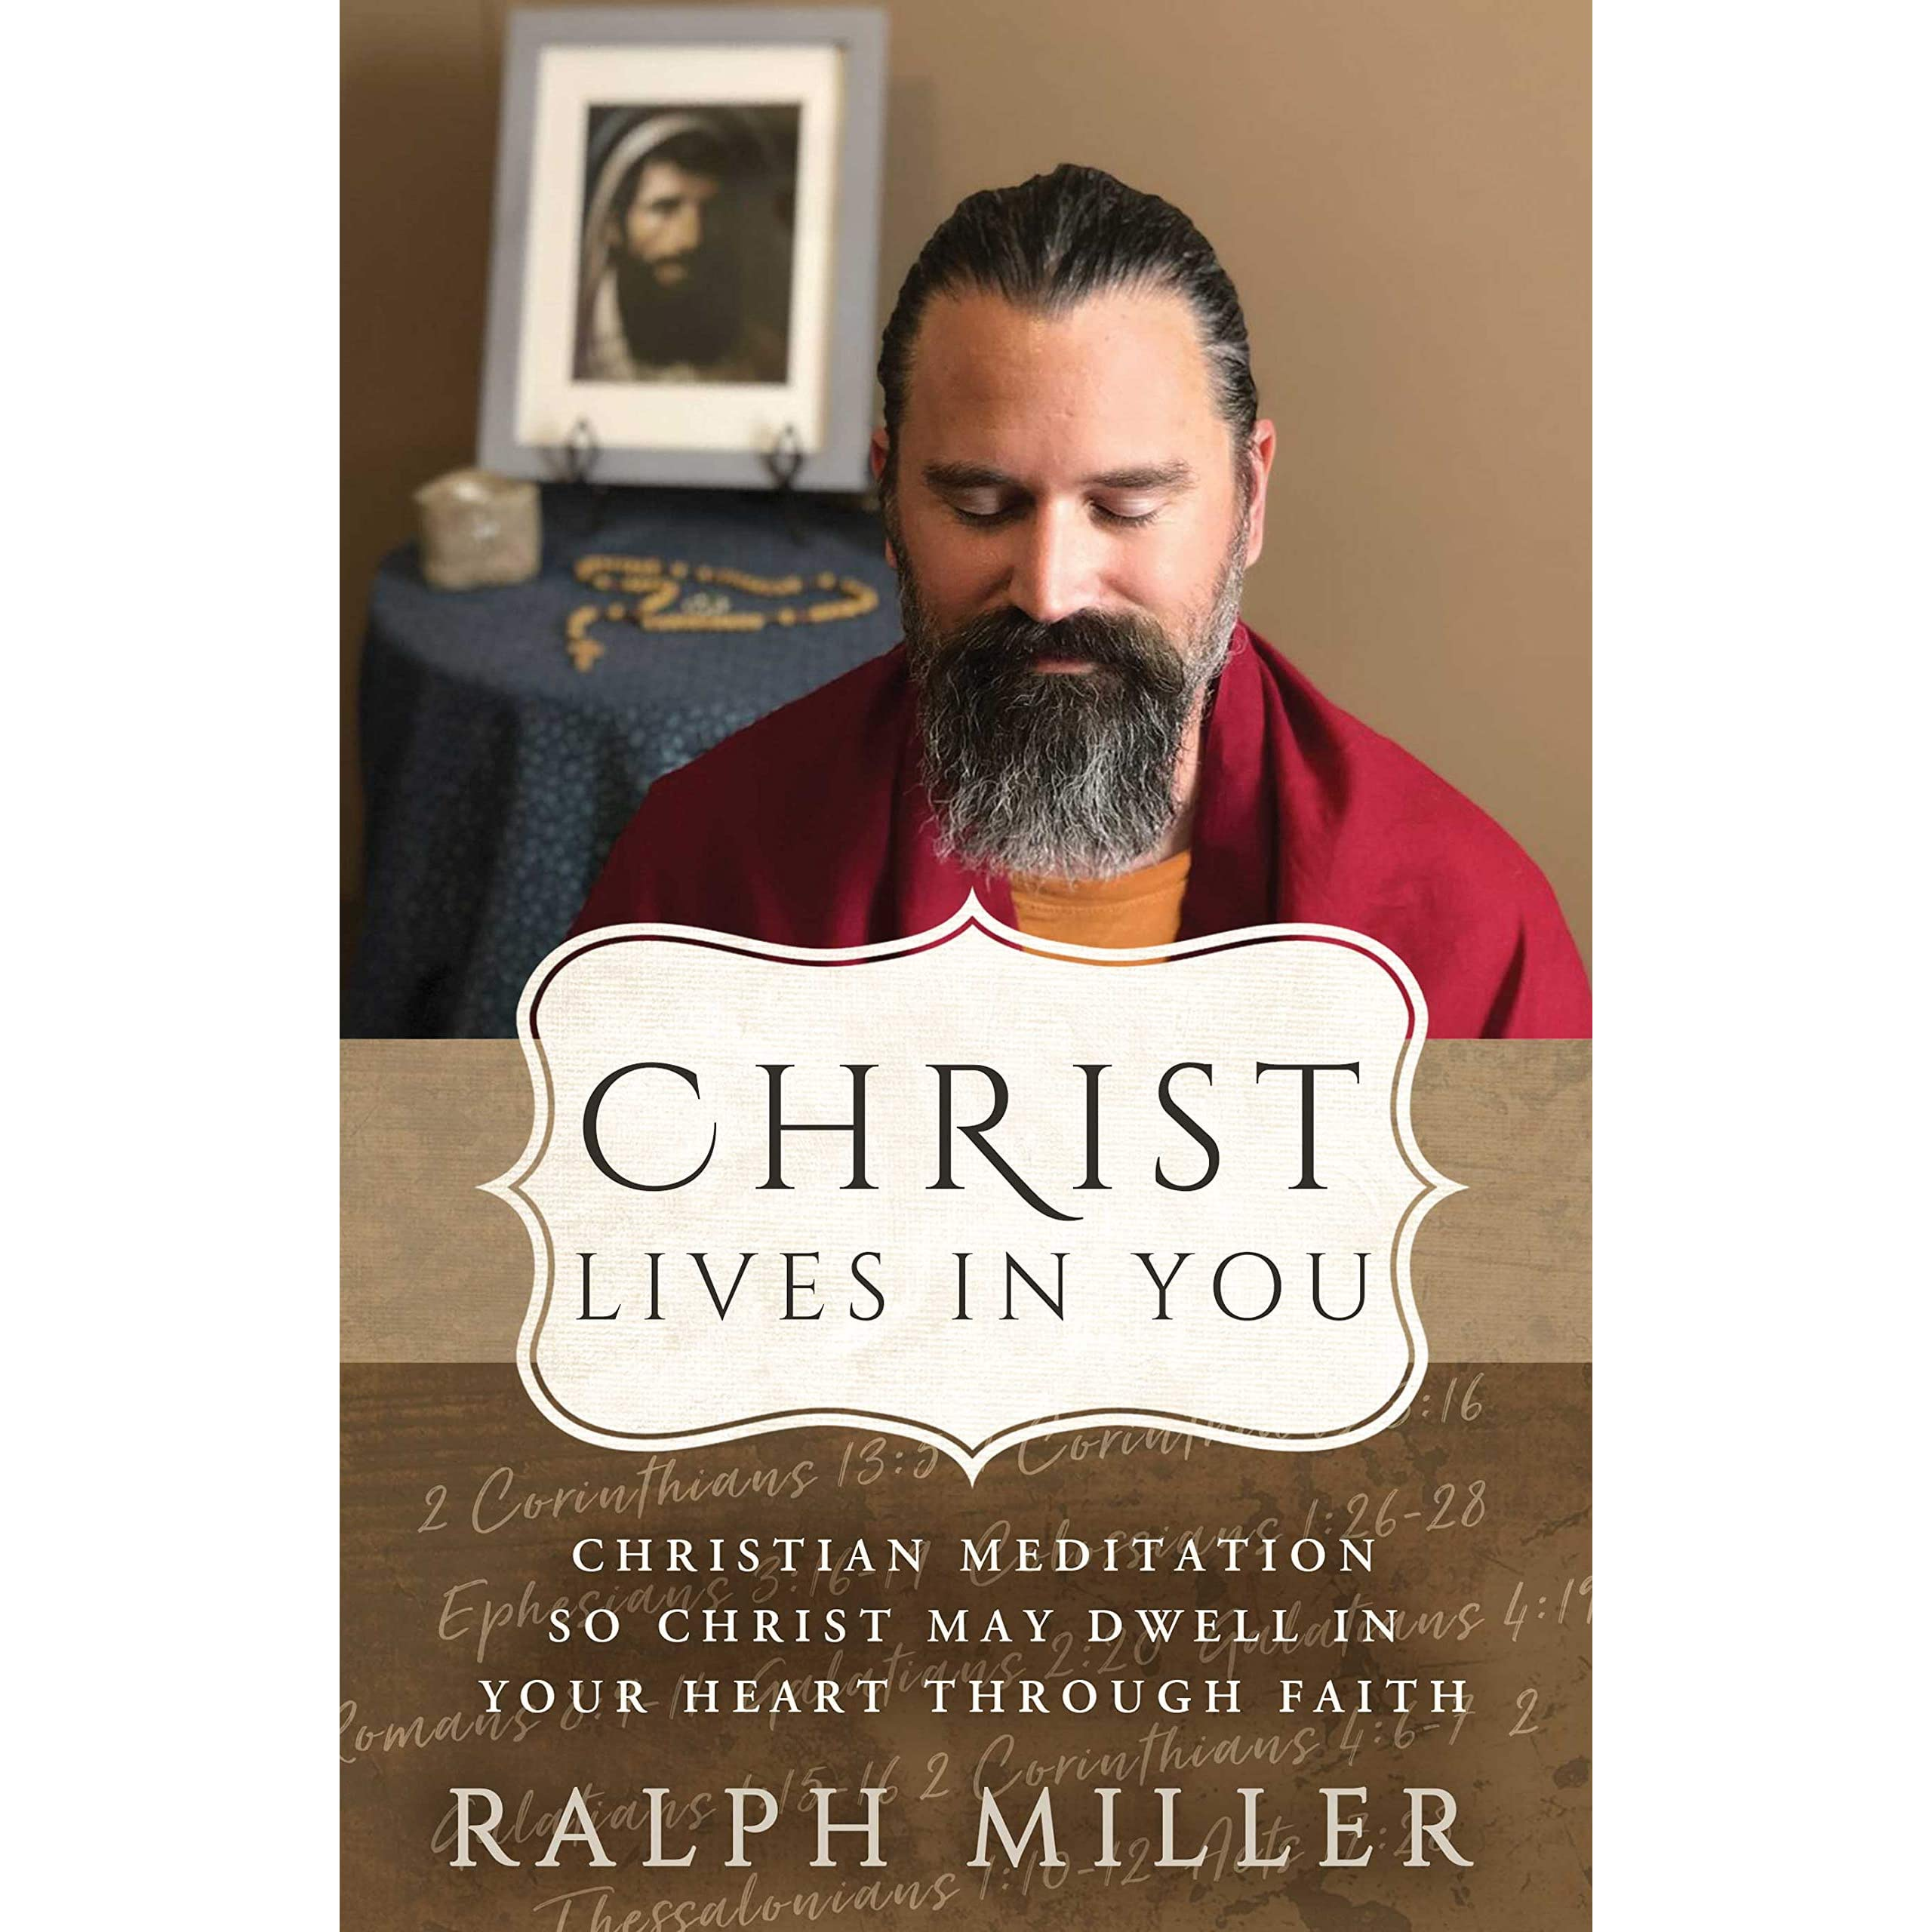 Two Christian Spiritual Practices You Should be Engaging With Now!